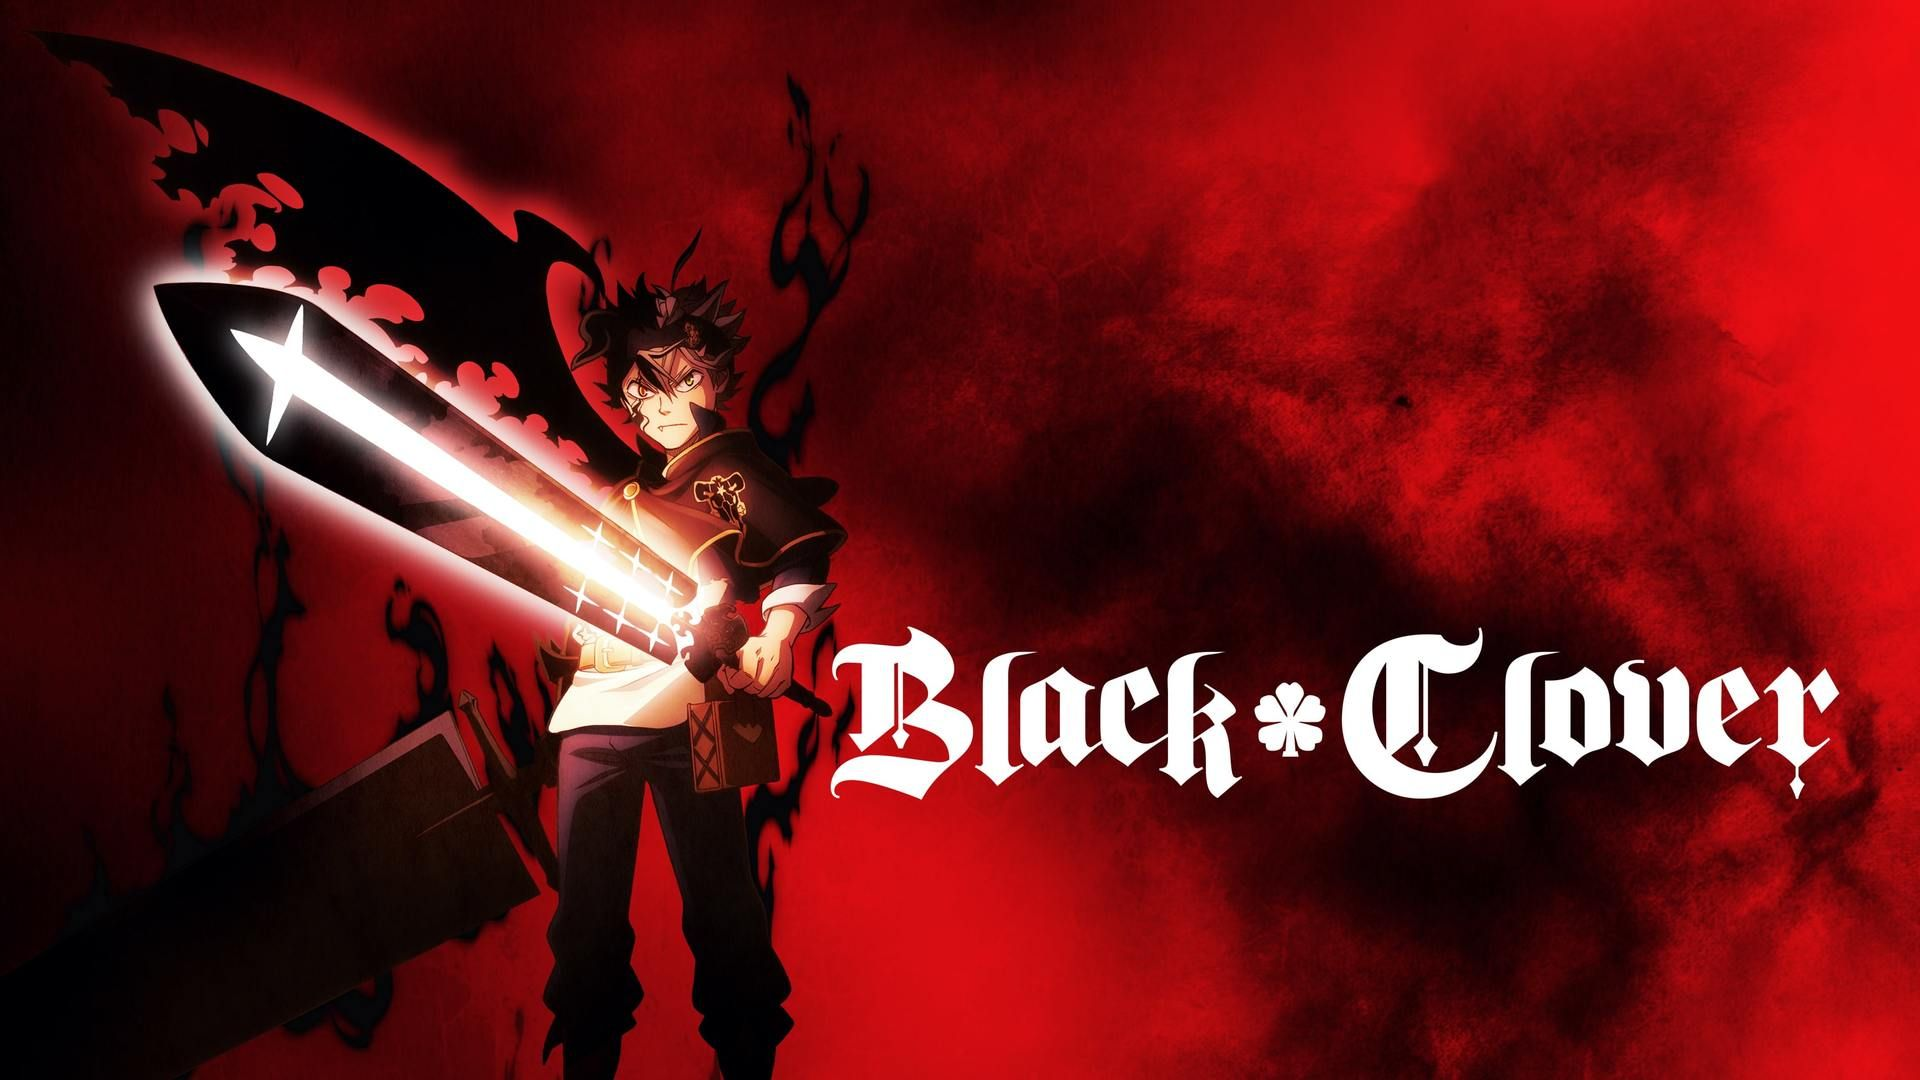 Download these free iphone wallpapers to give your phone a new look and to help you stay focused. Tumblr Wallpaper Black Clover Wallpaper Iphone Hd - Mini ...